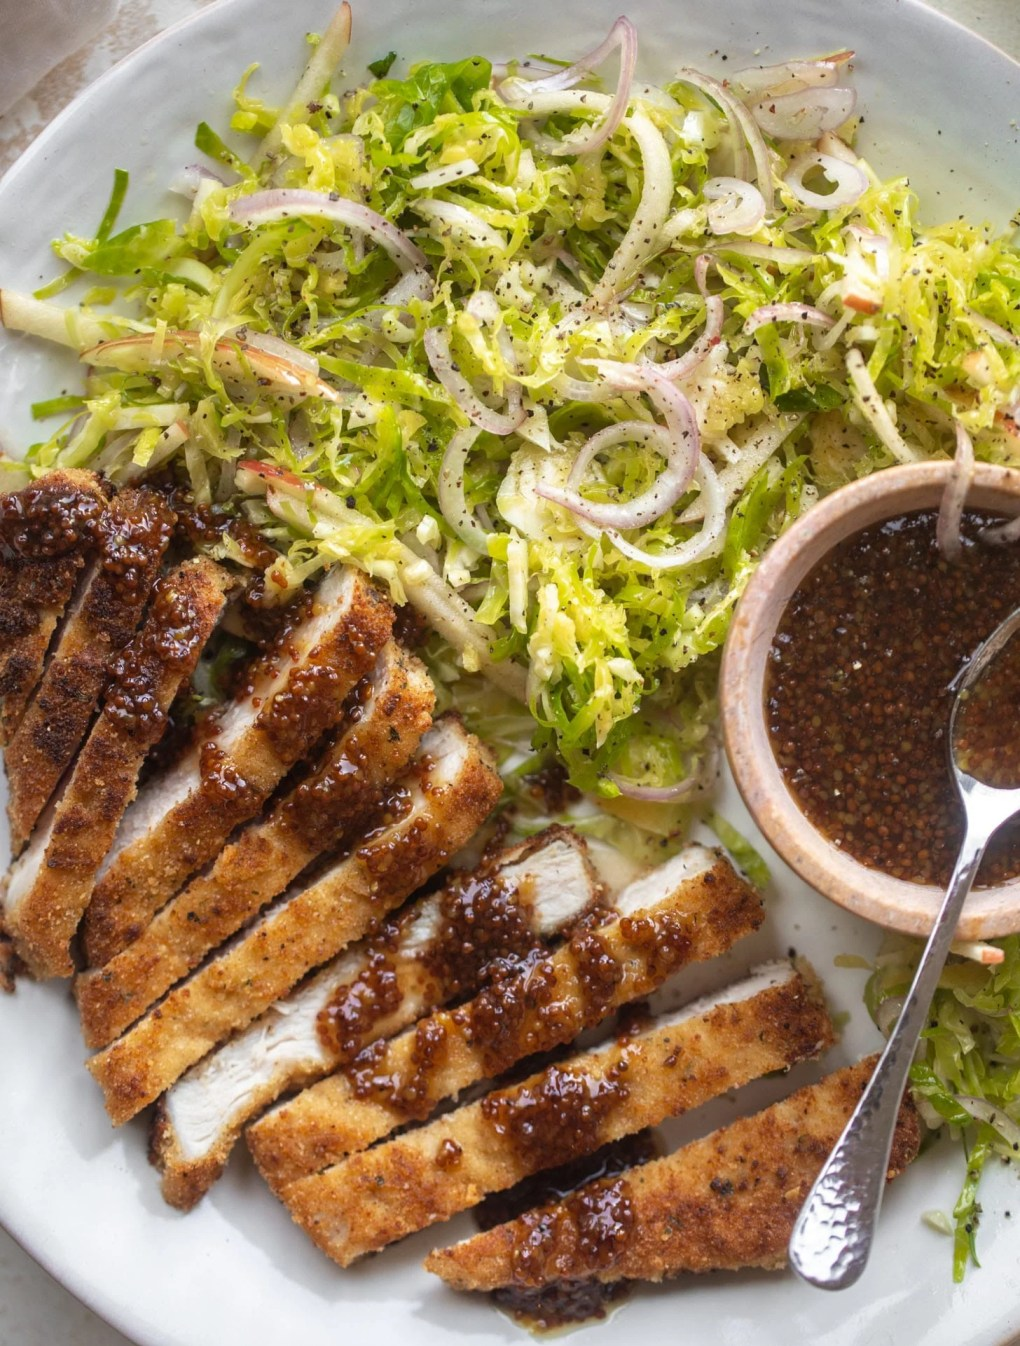 pork schnitzel with carolina gold BBQ sauce & brussels sprouts slaw